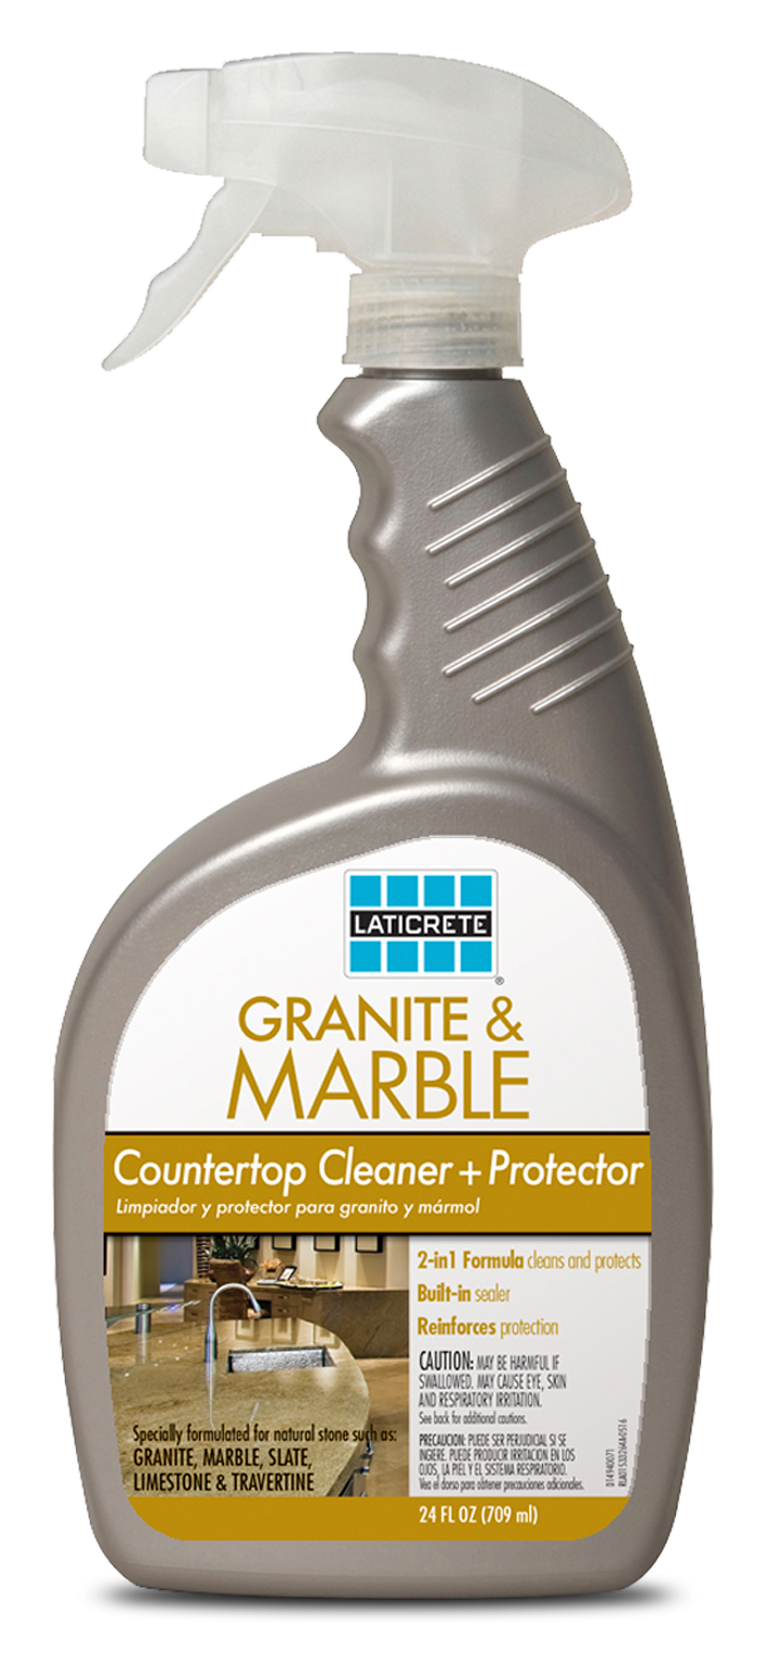 LATICRETE® Granite U0026 Marble Countertop Cleaner U0026 Protector Is An Easy To  Use, 2 In 1 Formula That Contains A Built In Sealer U2013 Which Reinforces  Protection ...